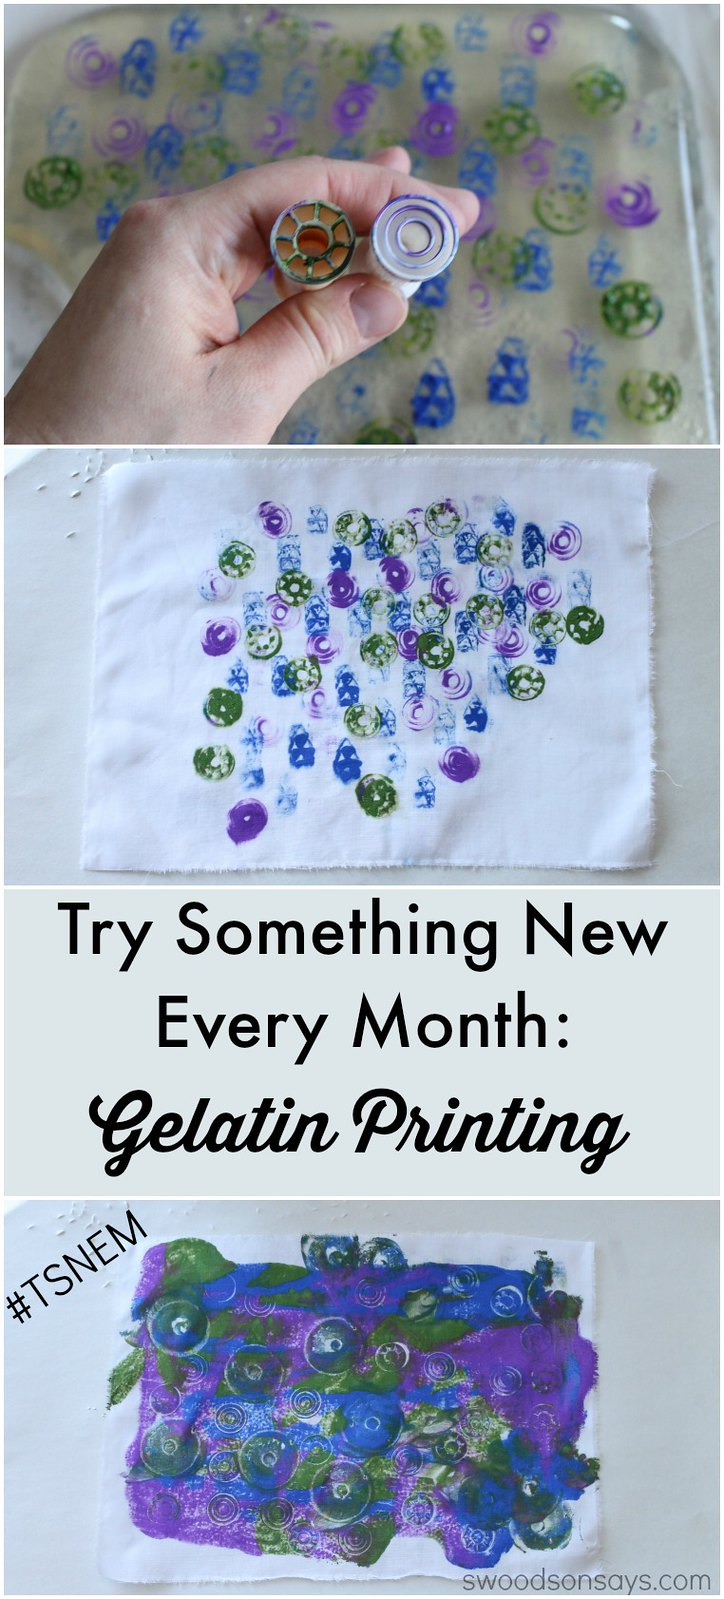 Gelatin Printing - Try Something New Every Month